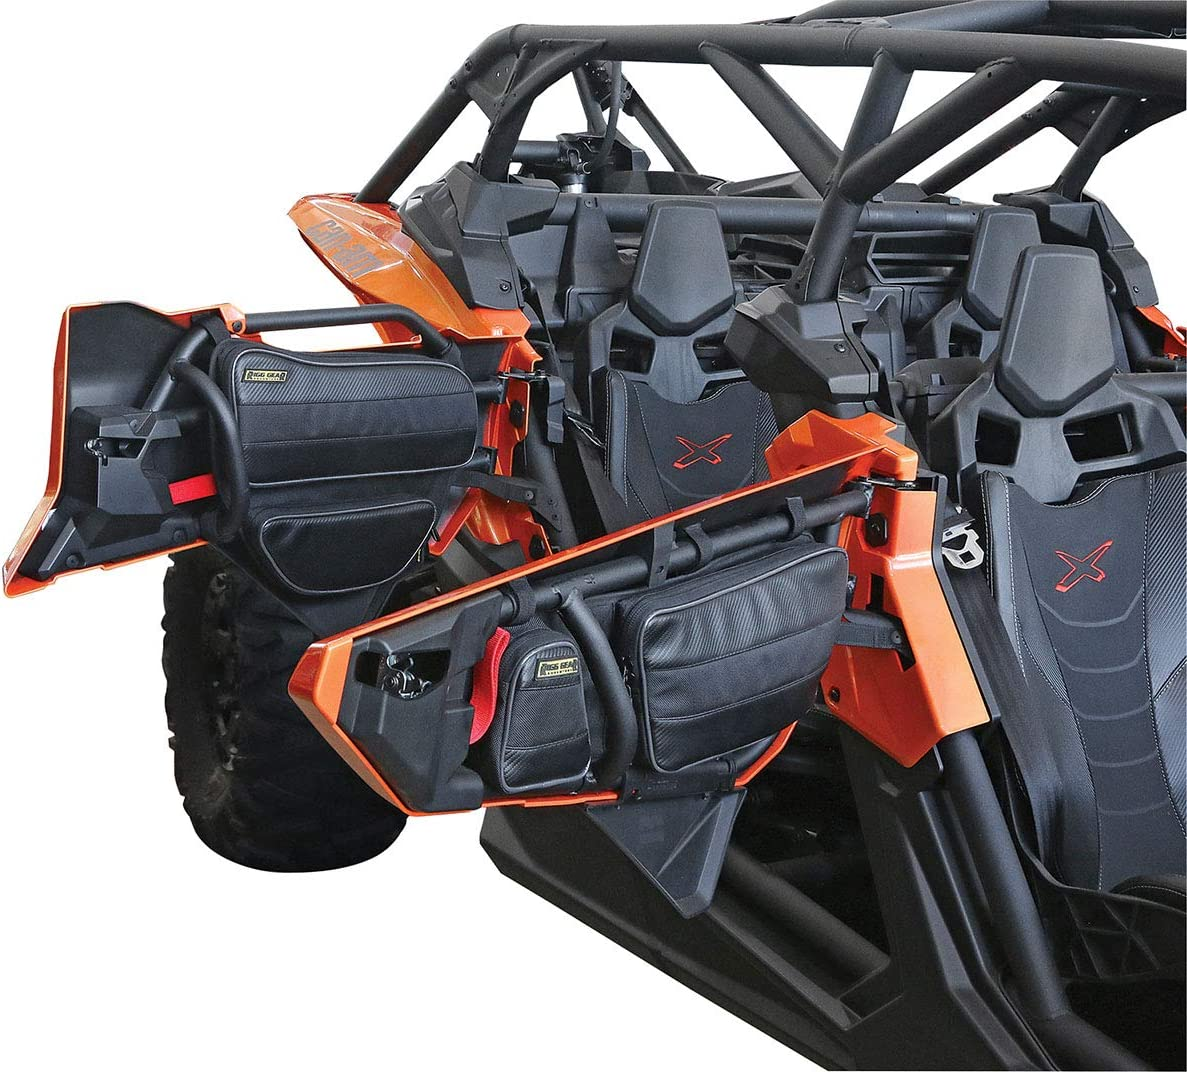 Nelson-Rigg RG-X3F Black Maverick X3 Front Door Bag Set